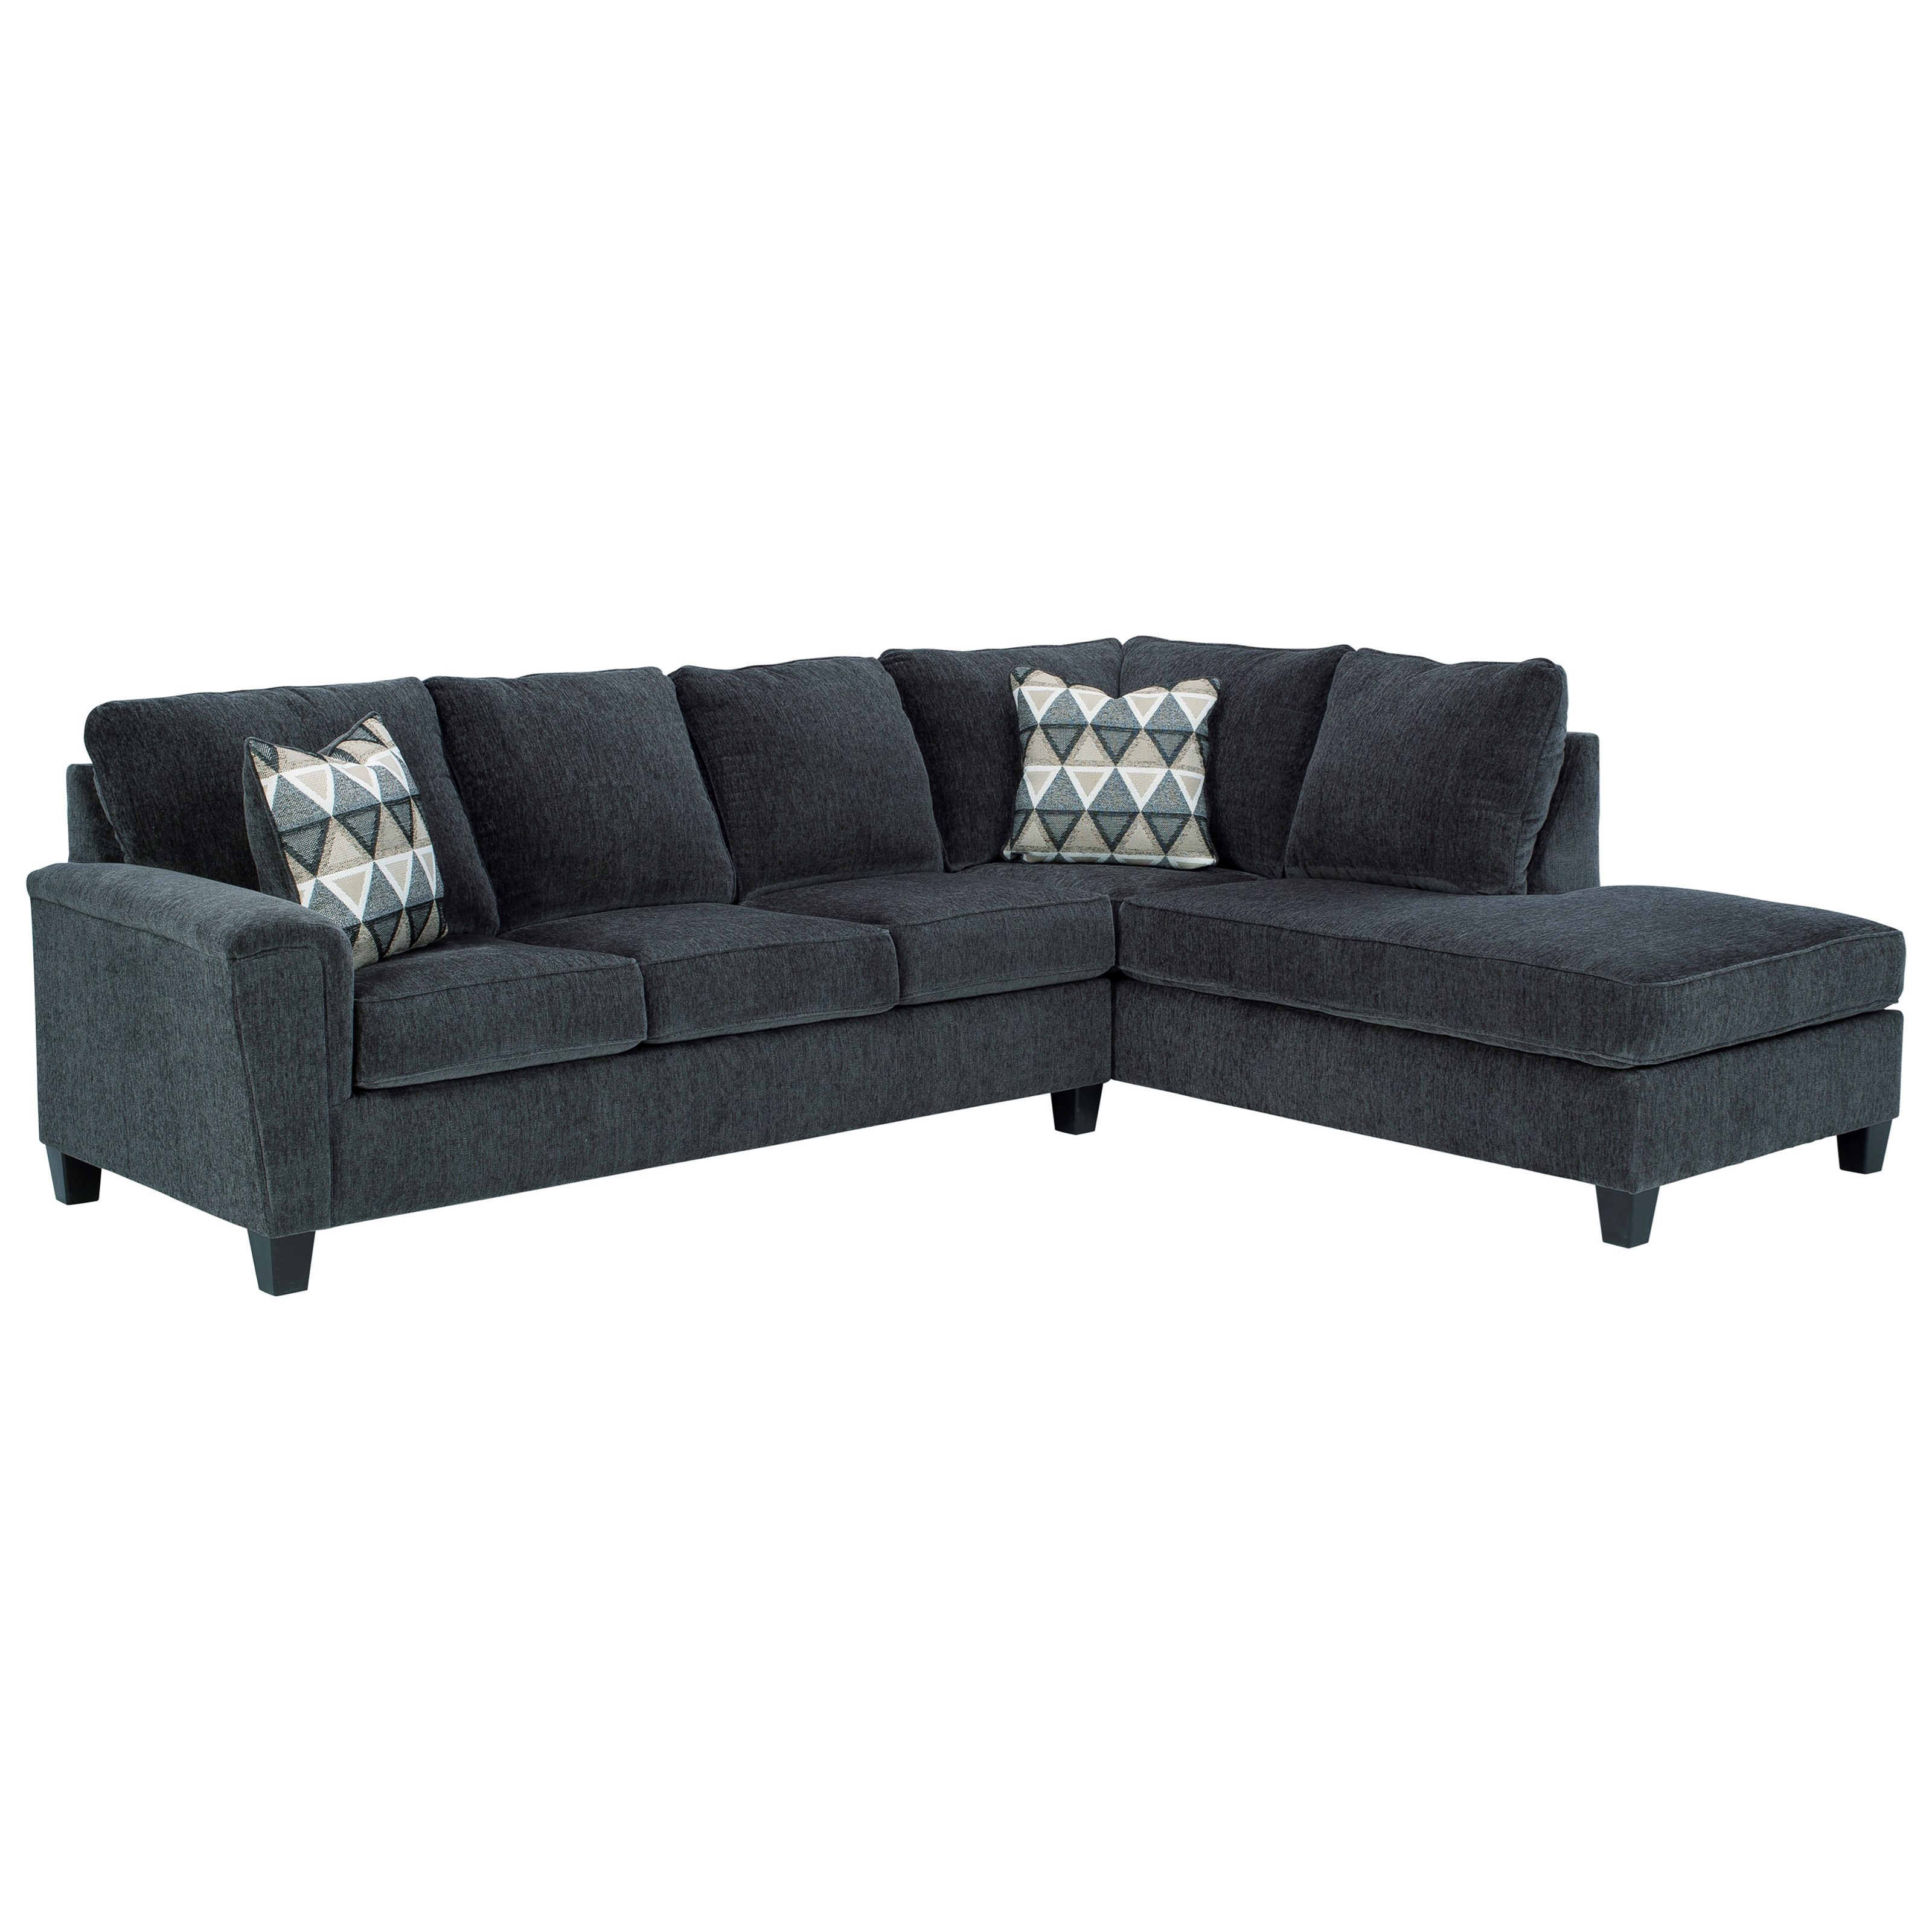 Abinger 2-Piece Sectional w/ Chaise and Sleeper by Michael Alan Select at Michael Alan Furniture & Design